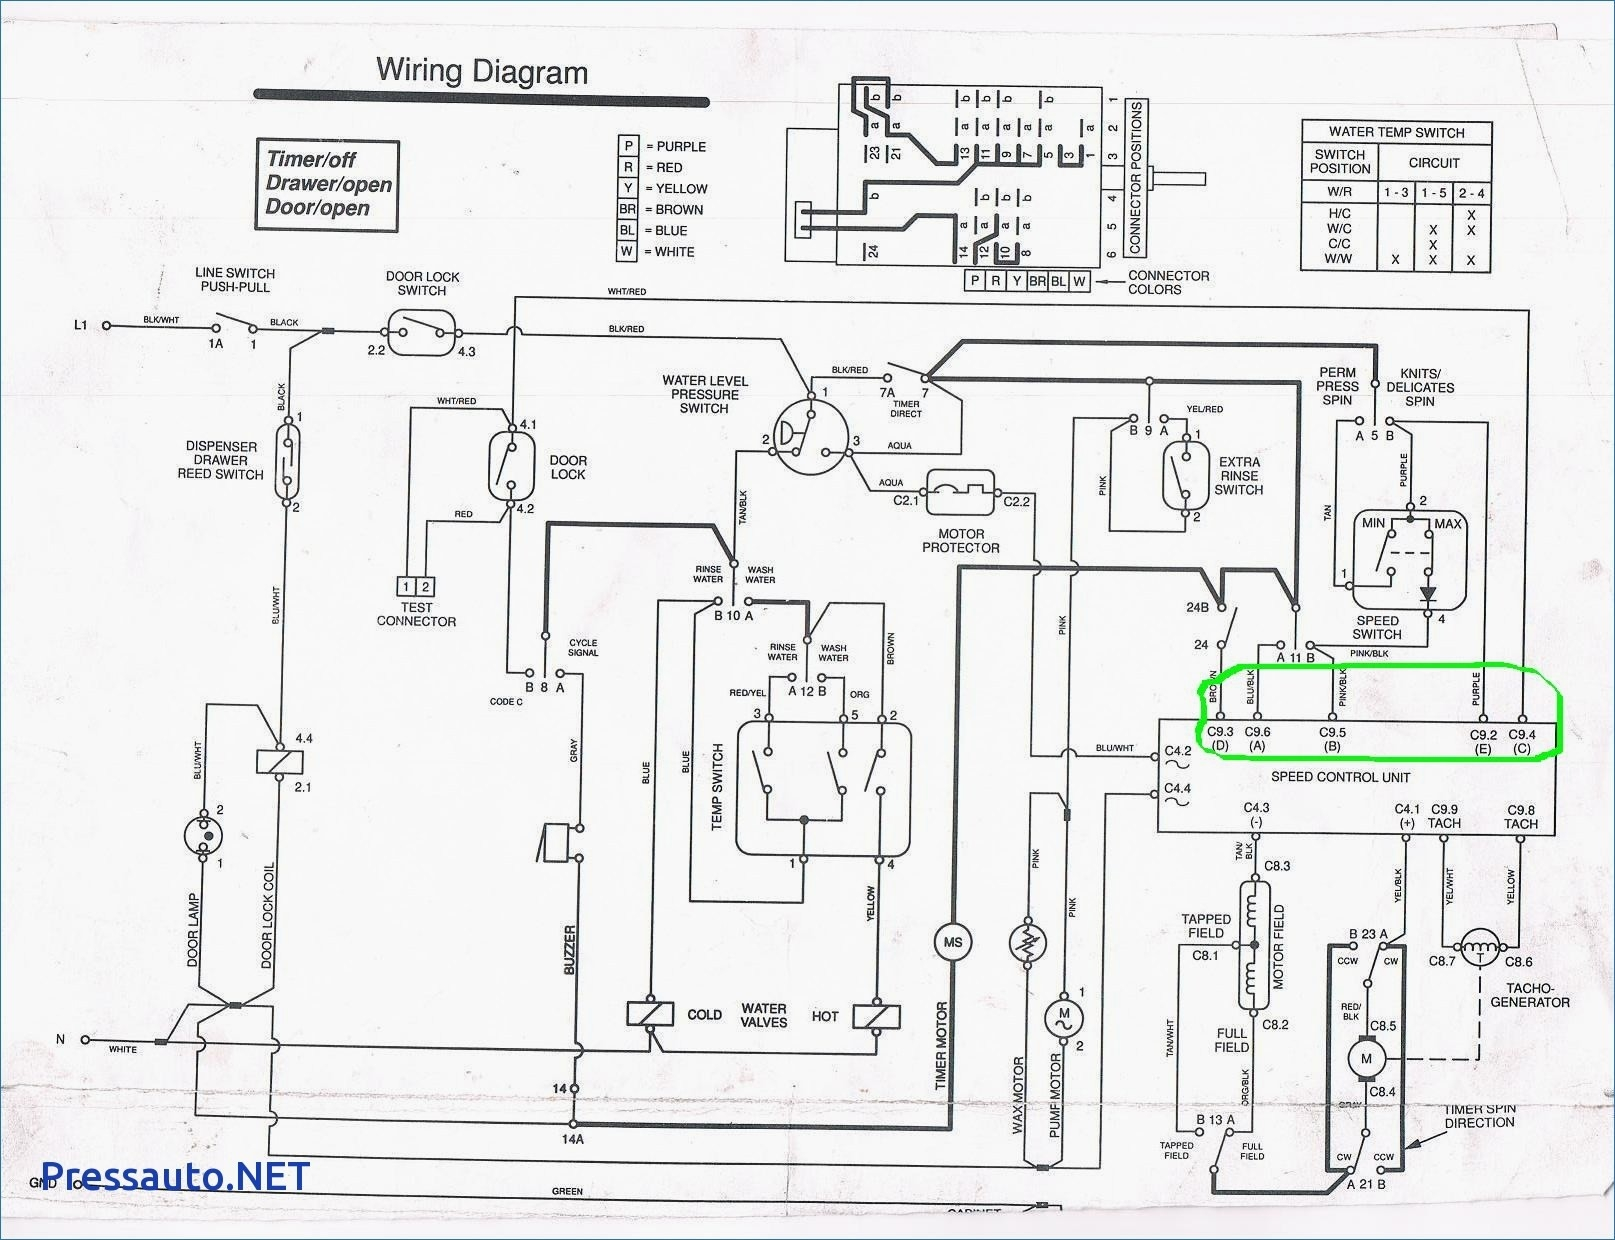 Whirlpool Washing Machine Wiring Diagram